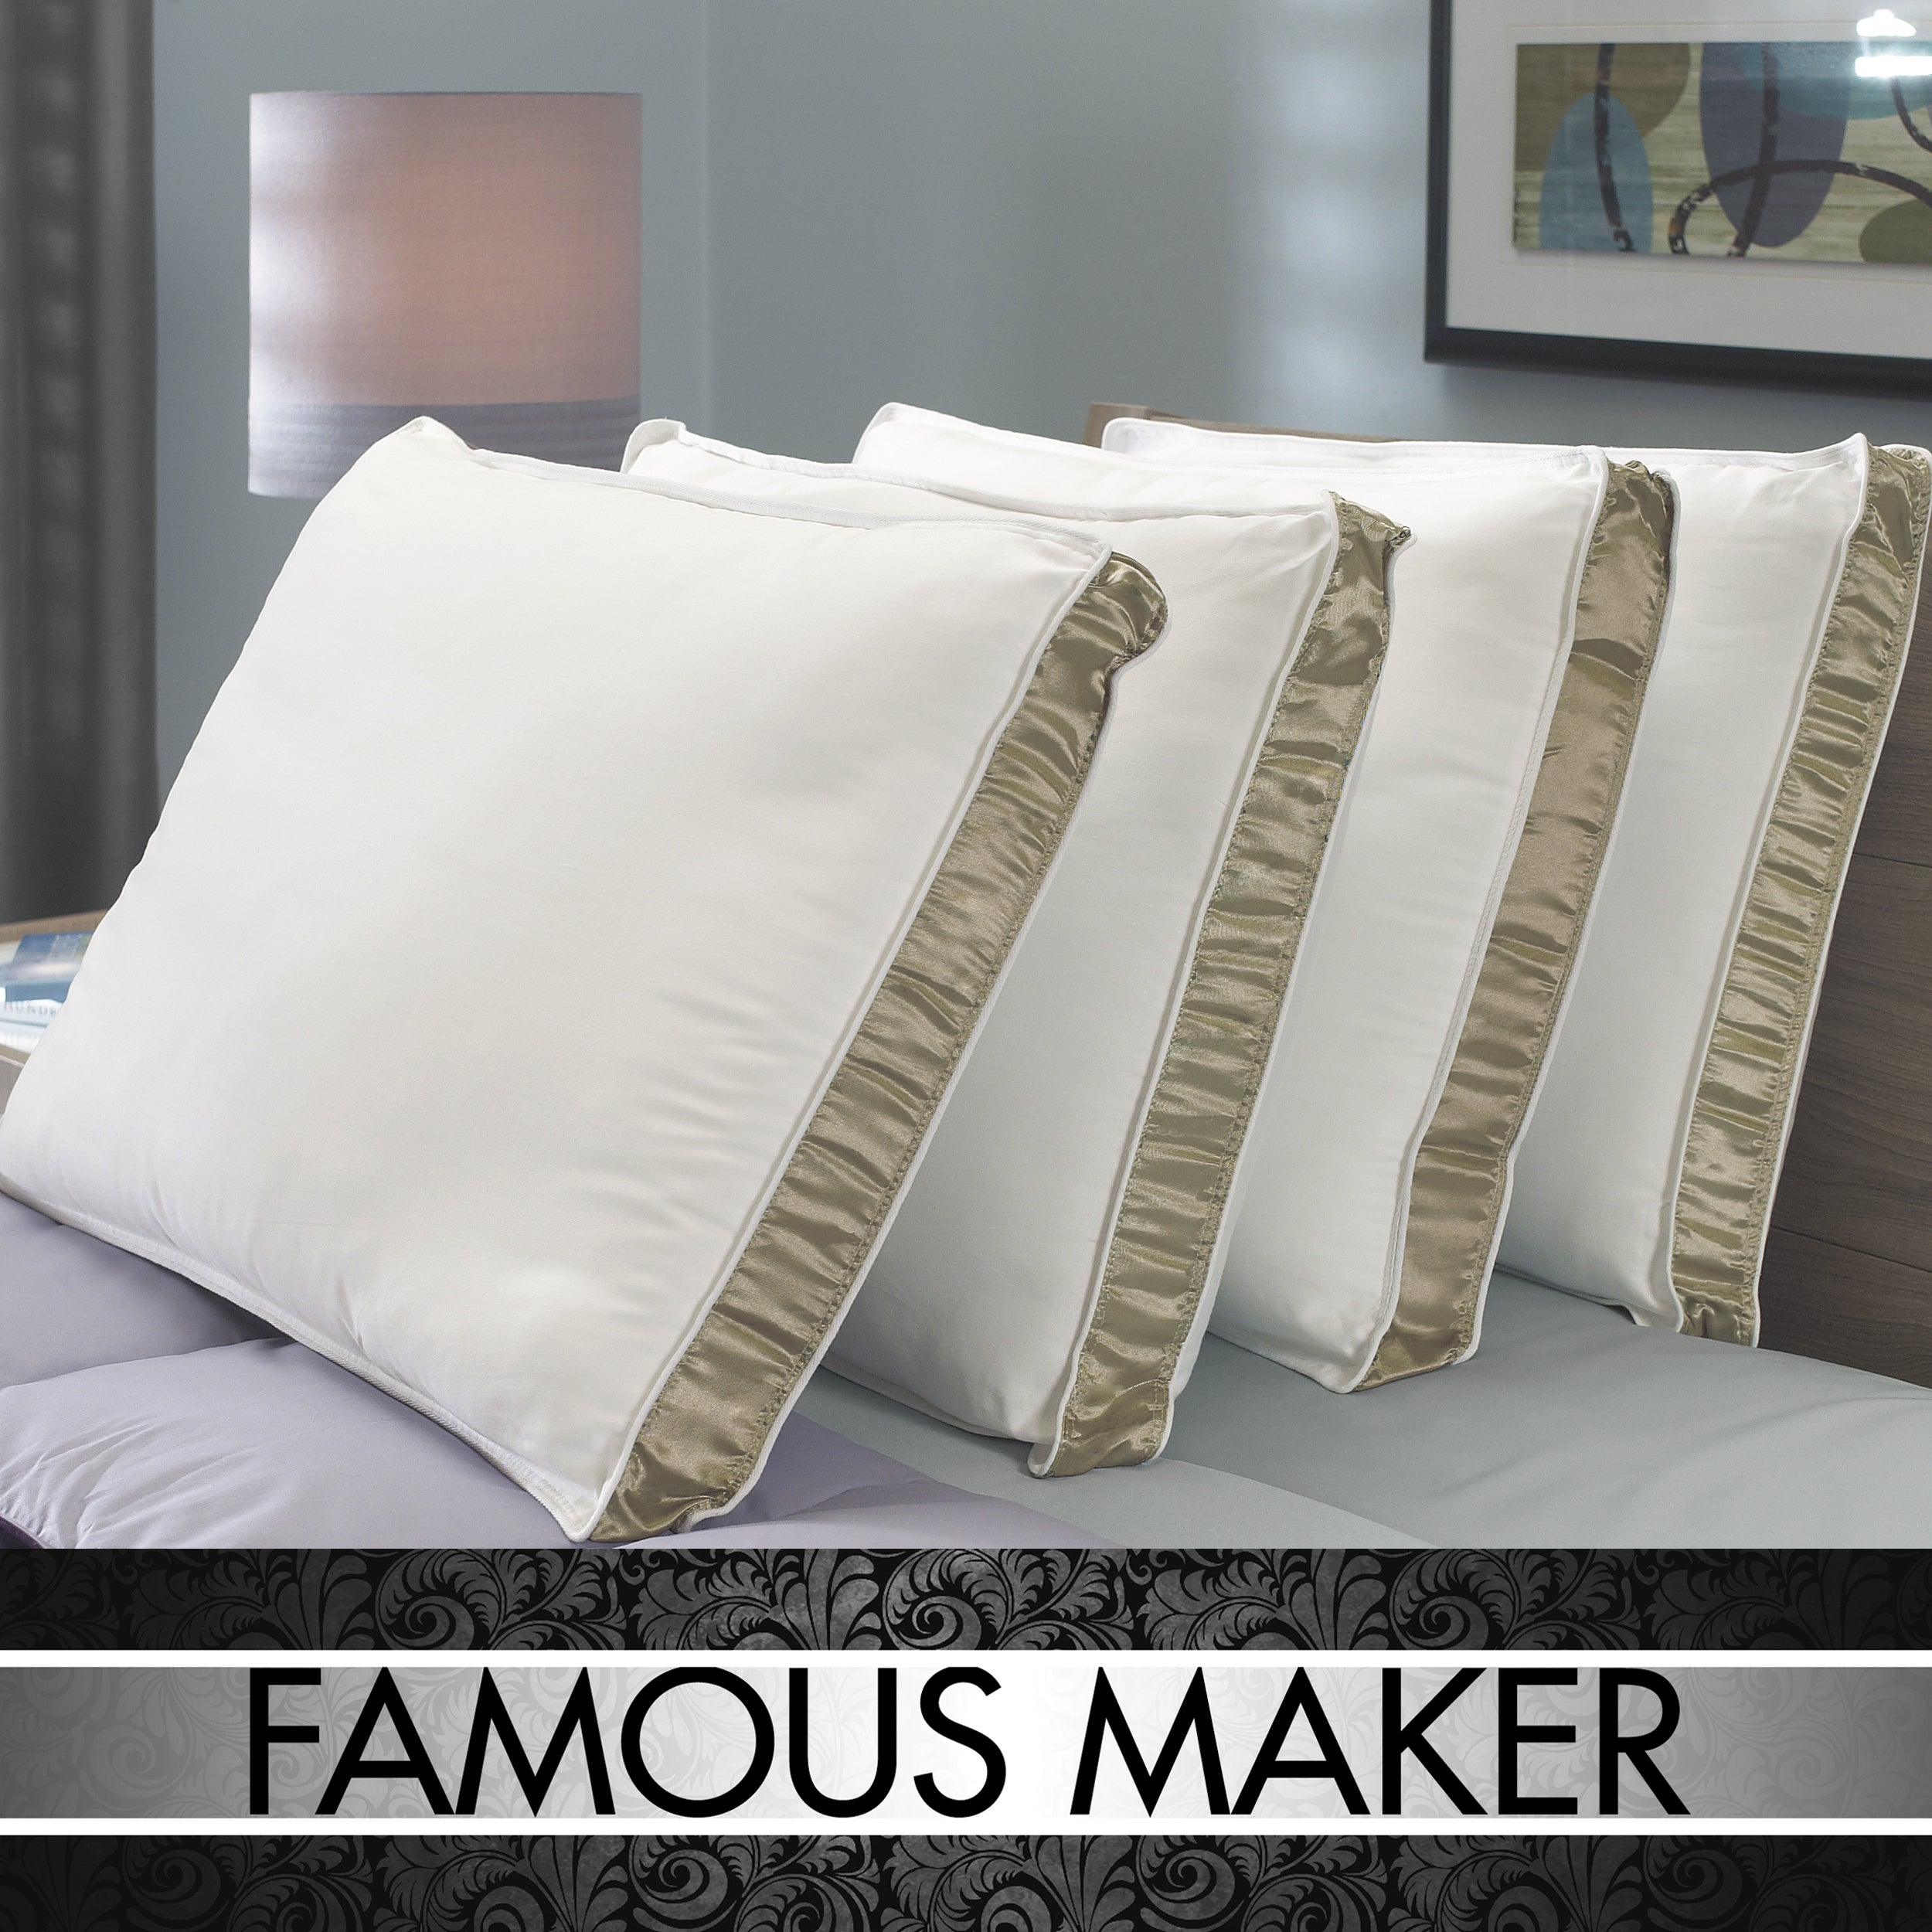 Famous Maker Plush Comfort Antimicrobial 300 Thread Count Pillows (Set of 4) - Thumbnail 0